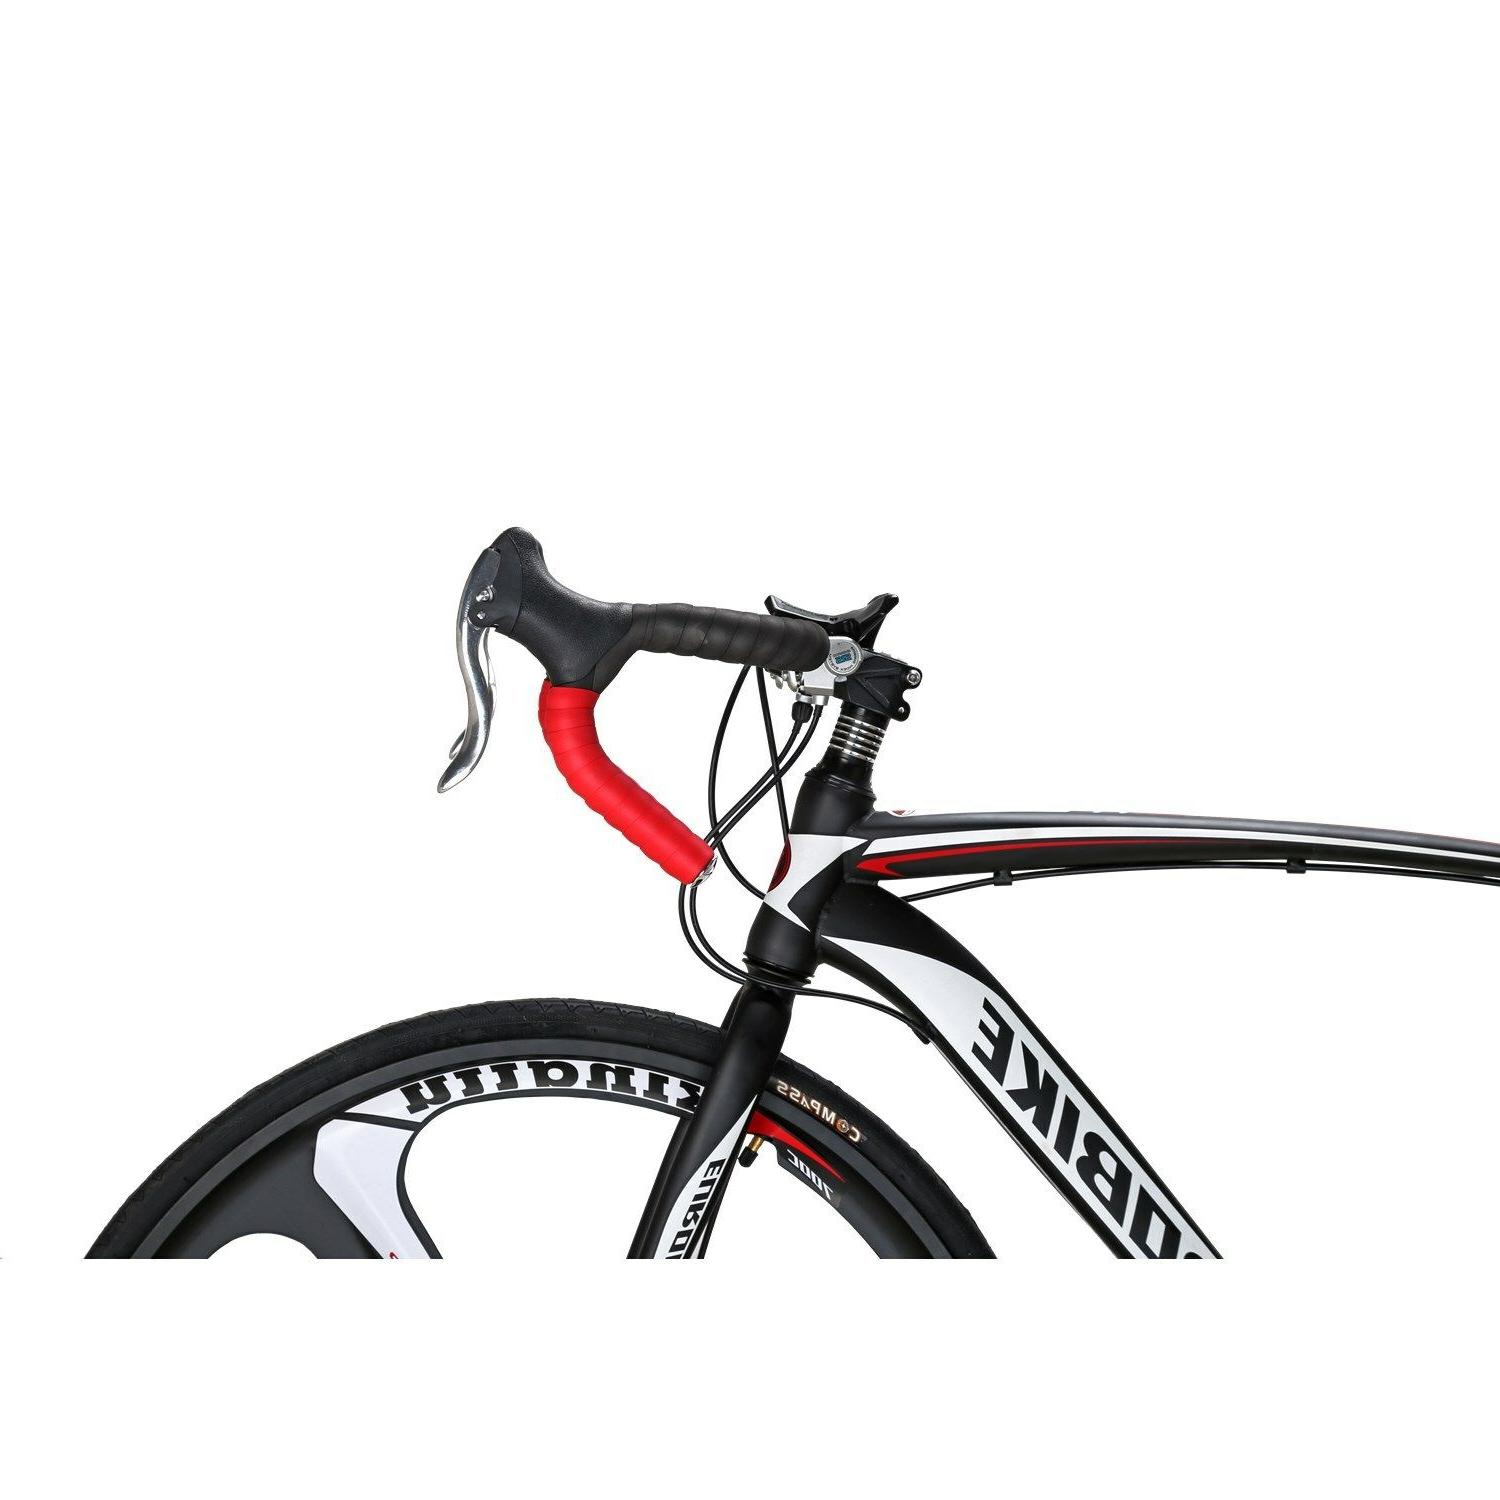 700C Bike Speed Complete Bicycle 54cm Disc Brakes Mens Cycling